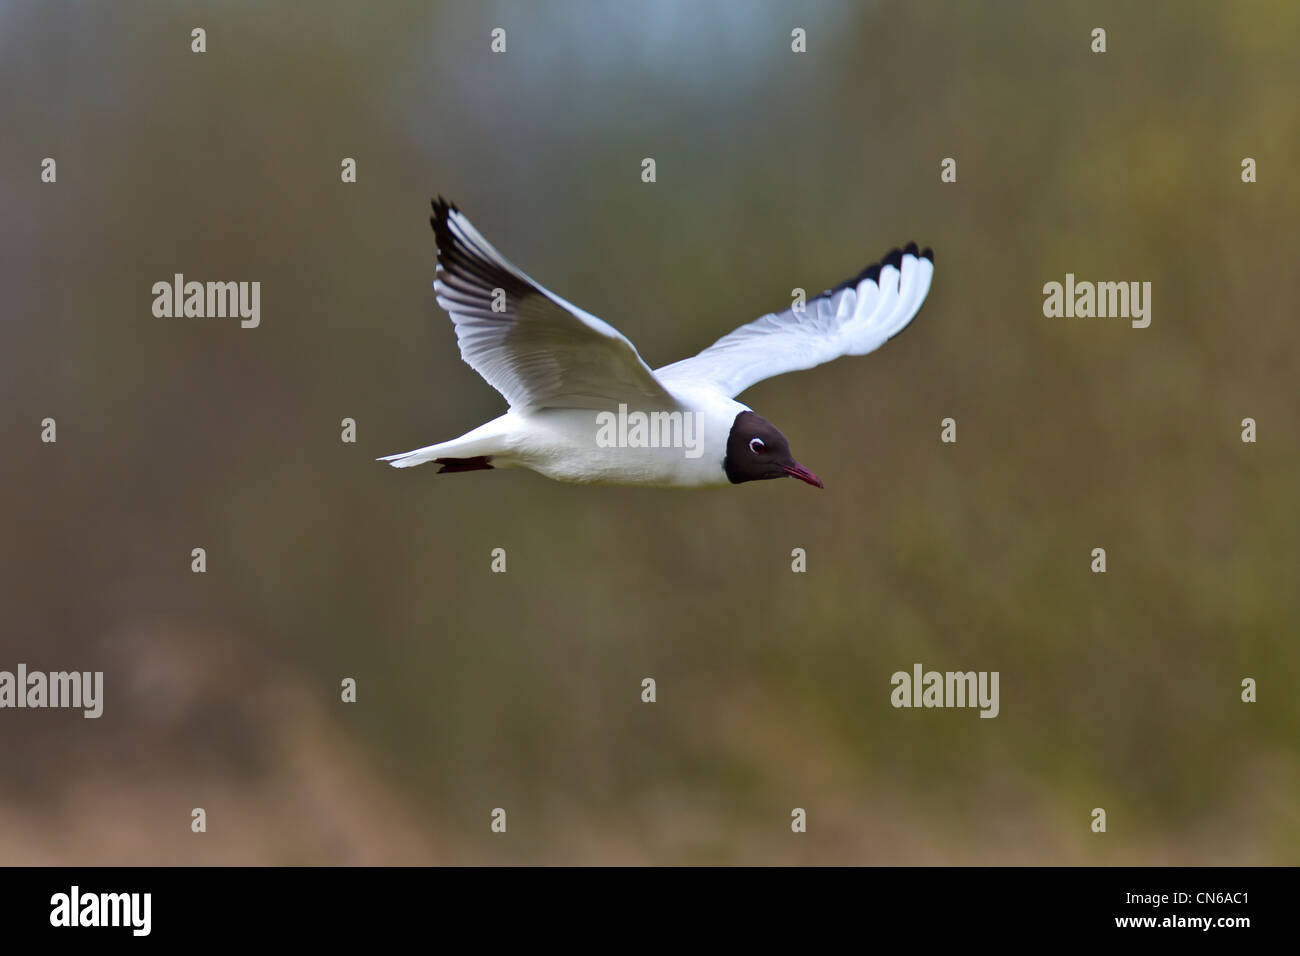 Black-headed Gull.Larus ridibundus (Laridae) in flight - Stock Image